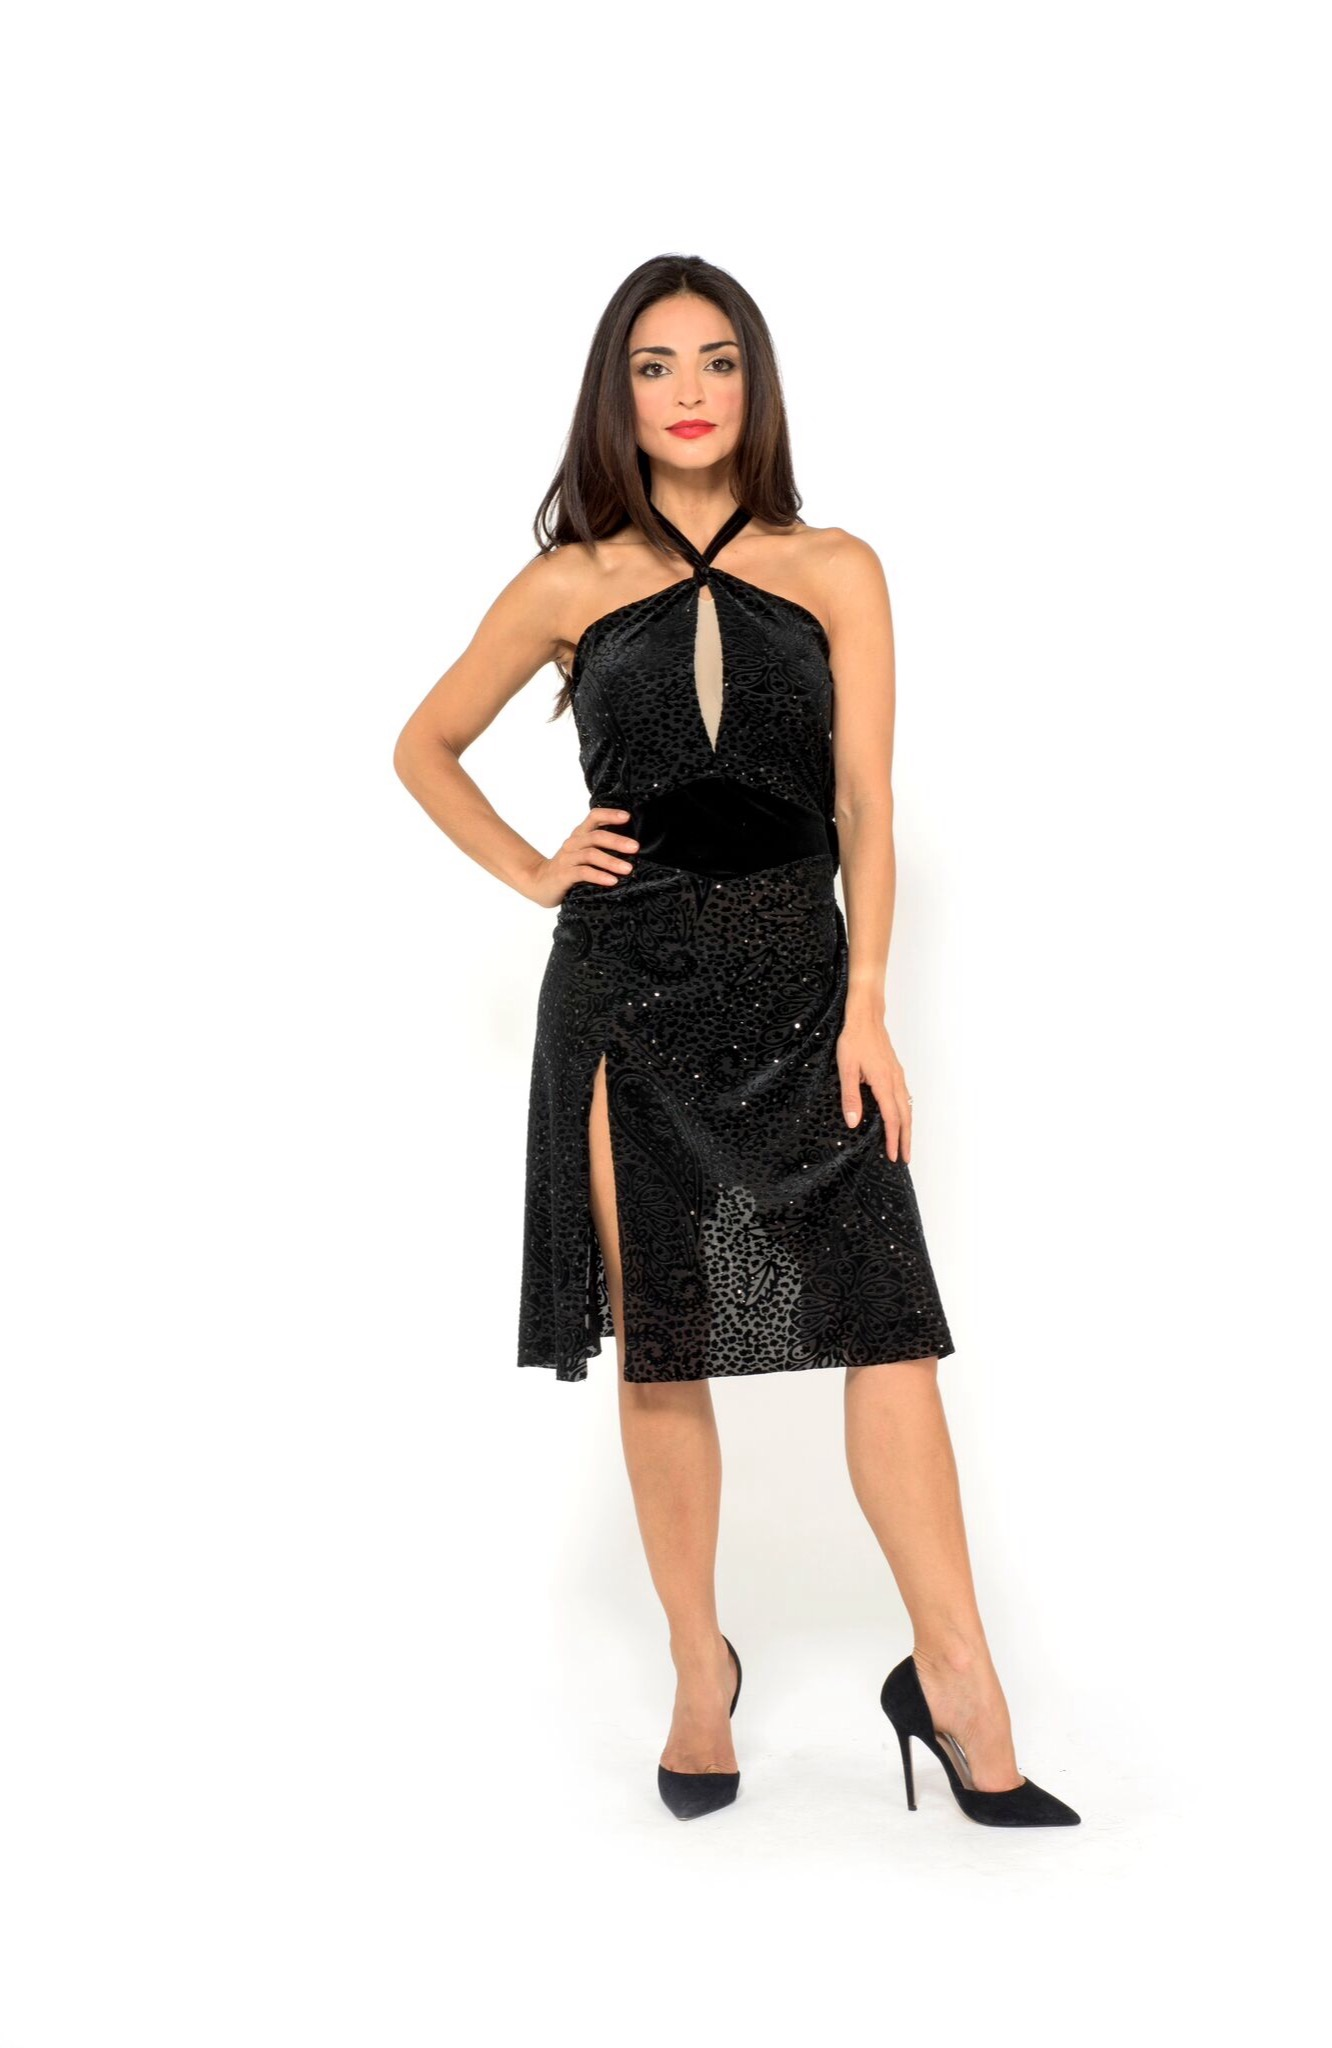 made in Italy couture Juana Sepulveda Tango dress black sequin velvet devore slit at the front